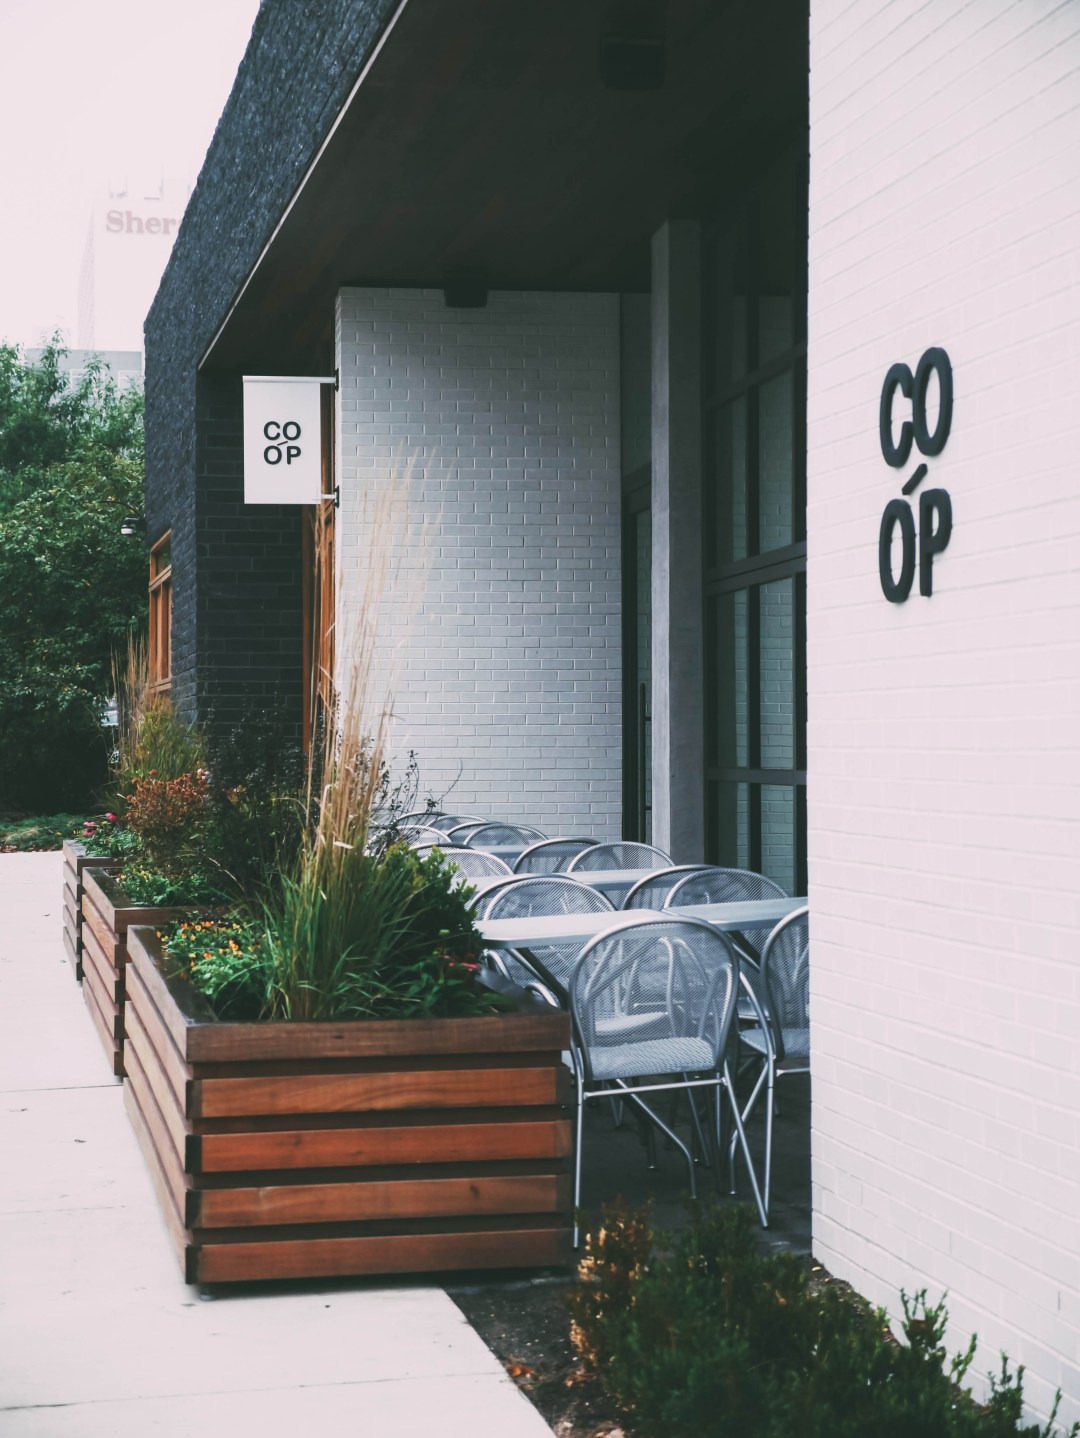 co-op exterior - october lately | brunch at audrey's